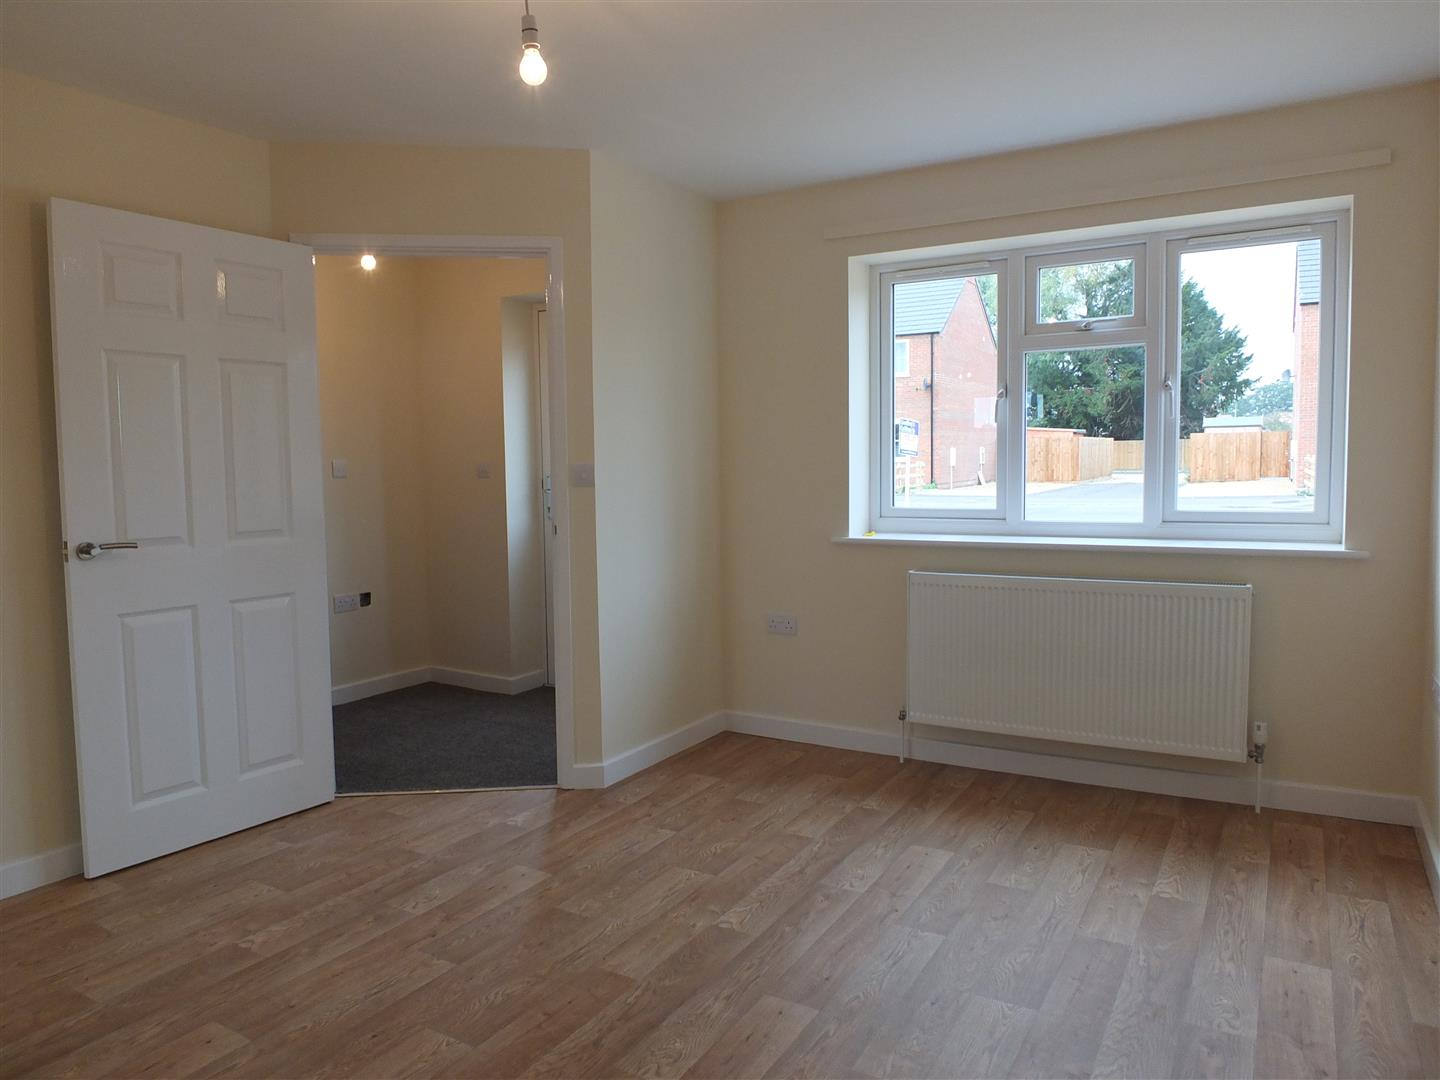 3 bed house to rent in Little London, Long Sutton 7